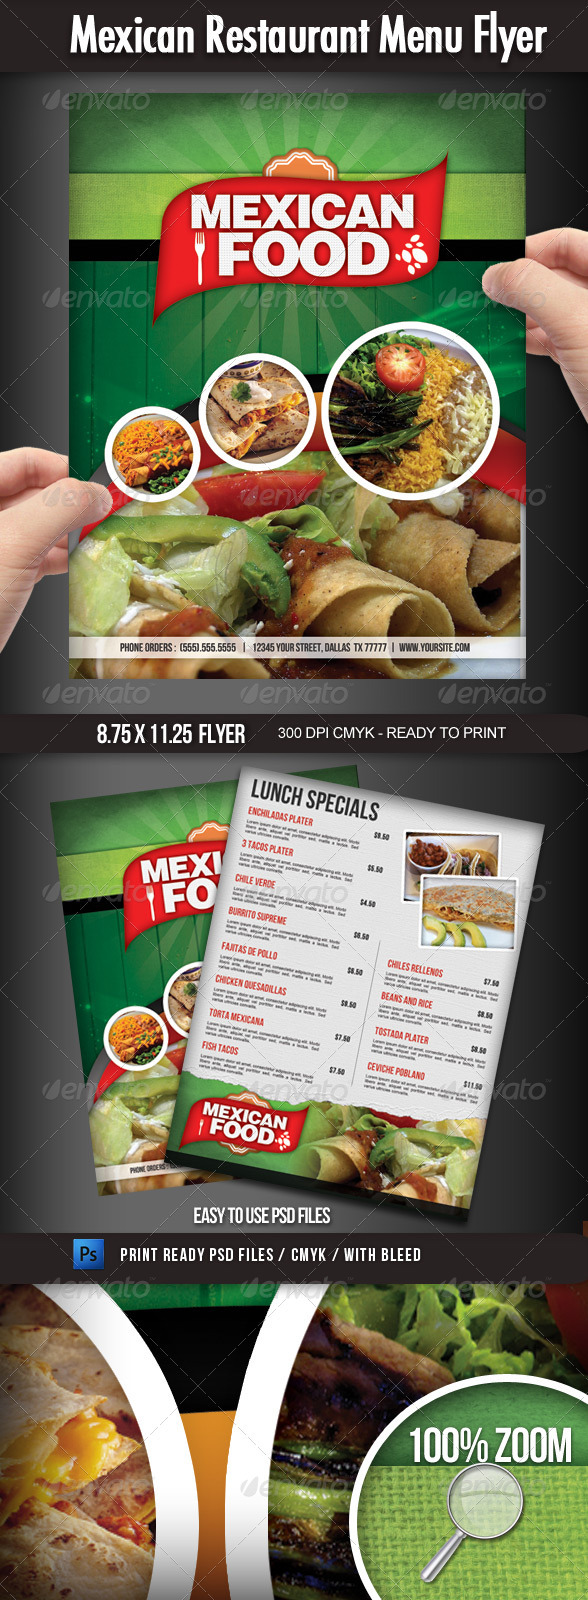 60 premium restaurant menu templates dzineflip for Resturant menu templates